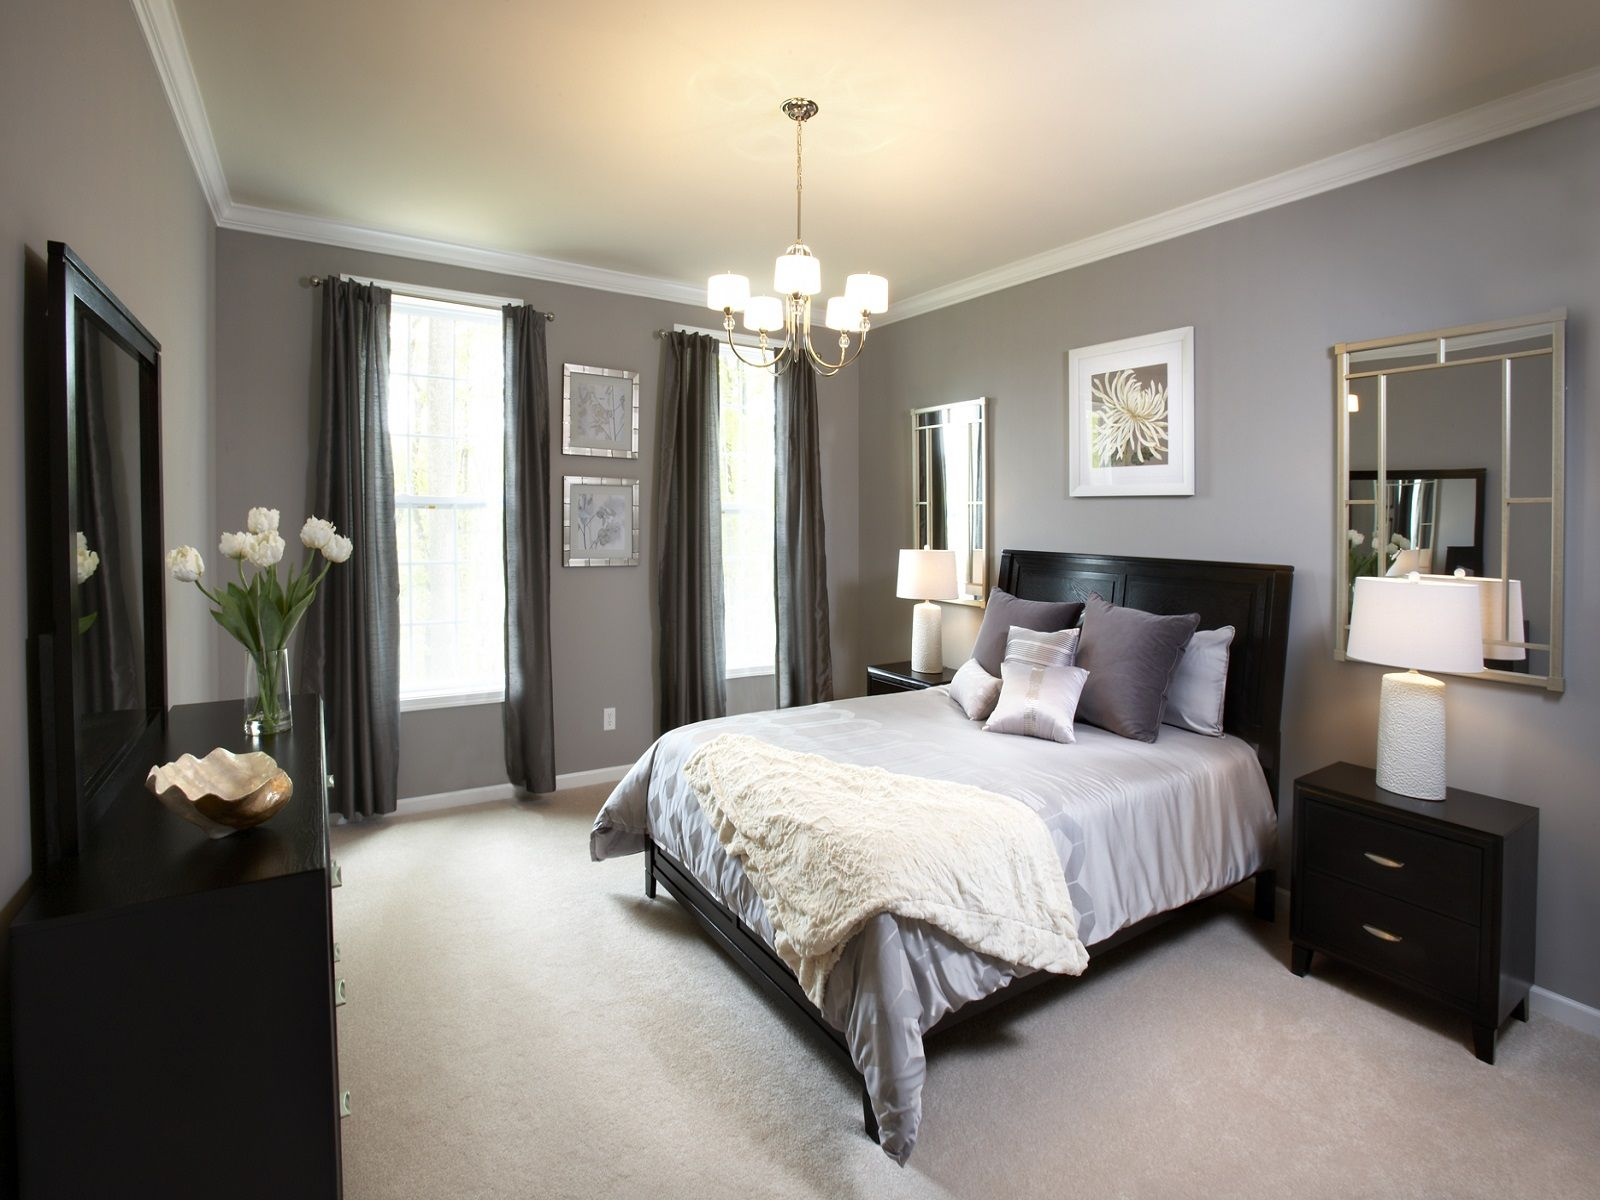 awesome silver shade 5 lights chandelier over white cover bedding sheet and black woods headboards also grey bedroom decormaster - Black White And Silver Bedroom Ideas